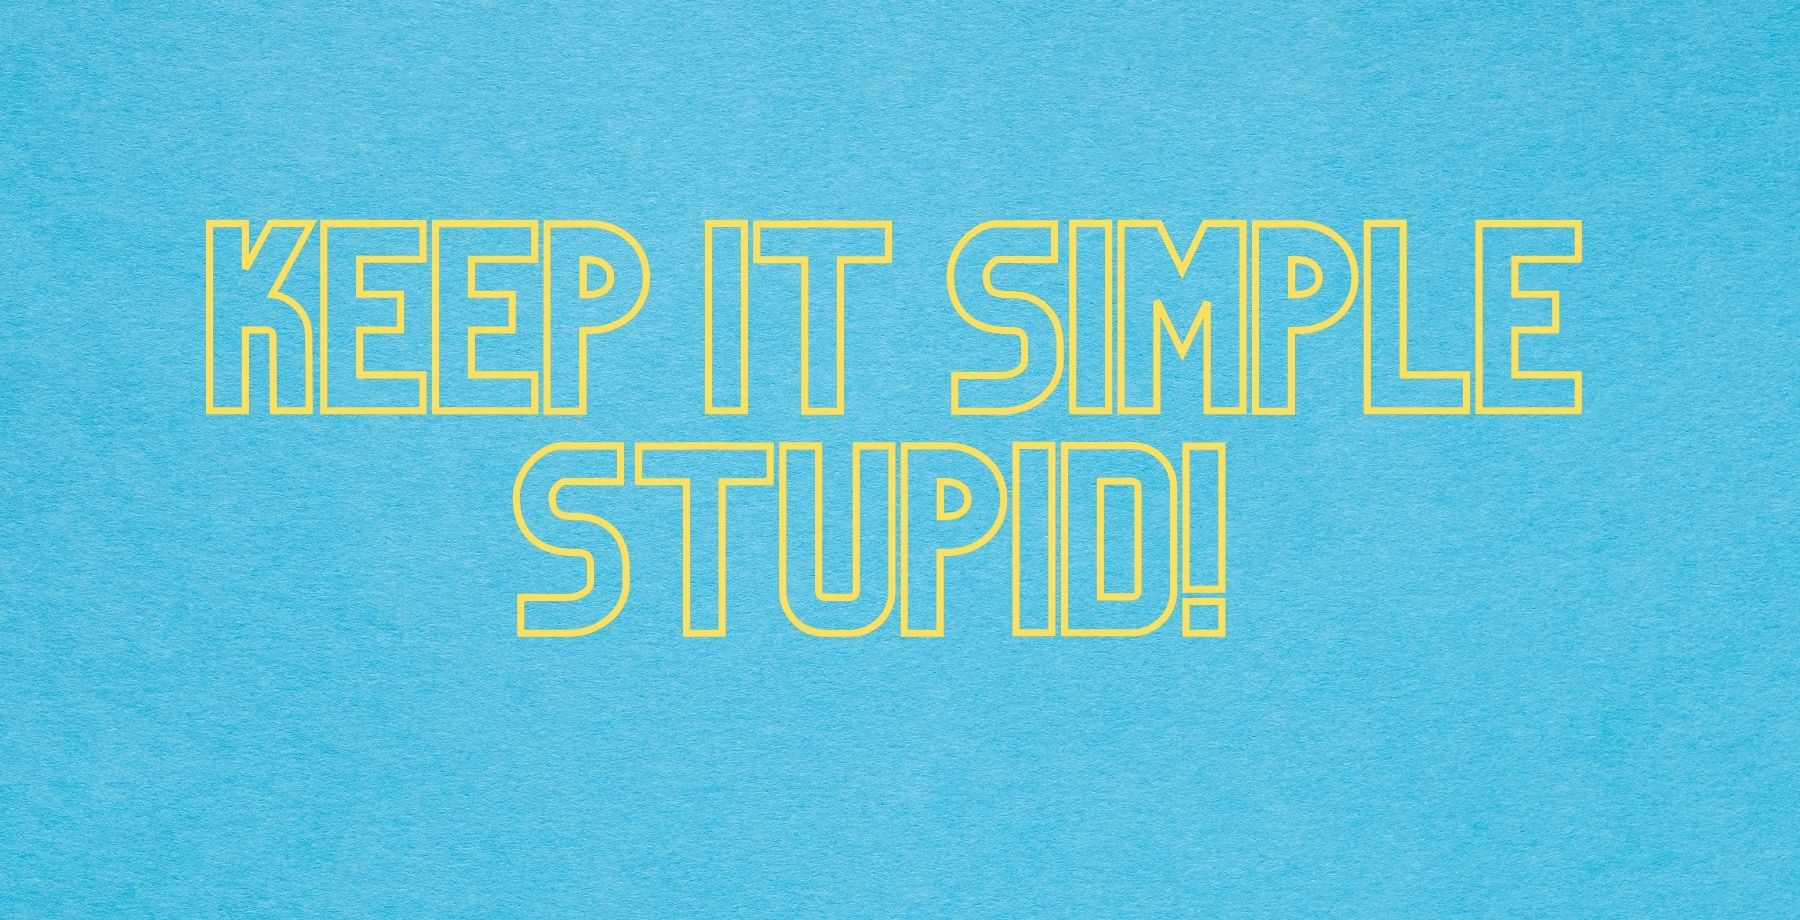 Keep it simple stupid as concept in legal writing